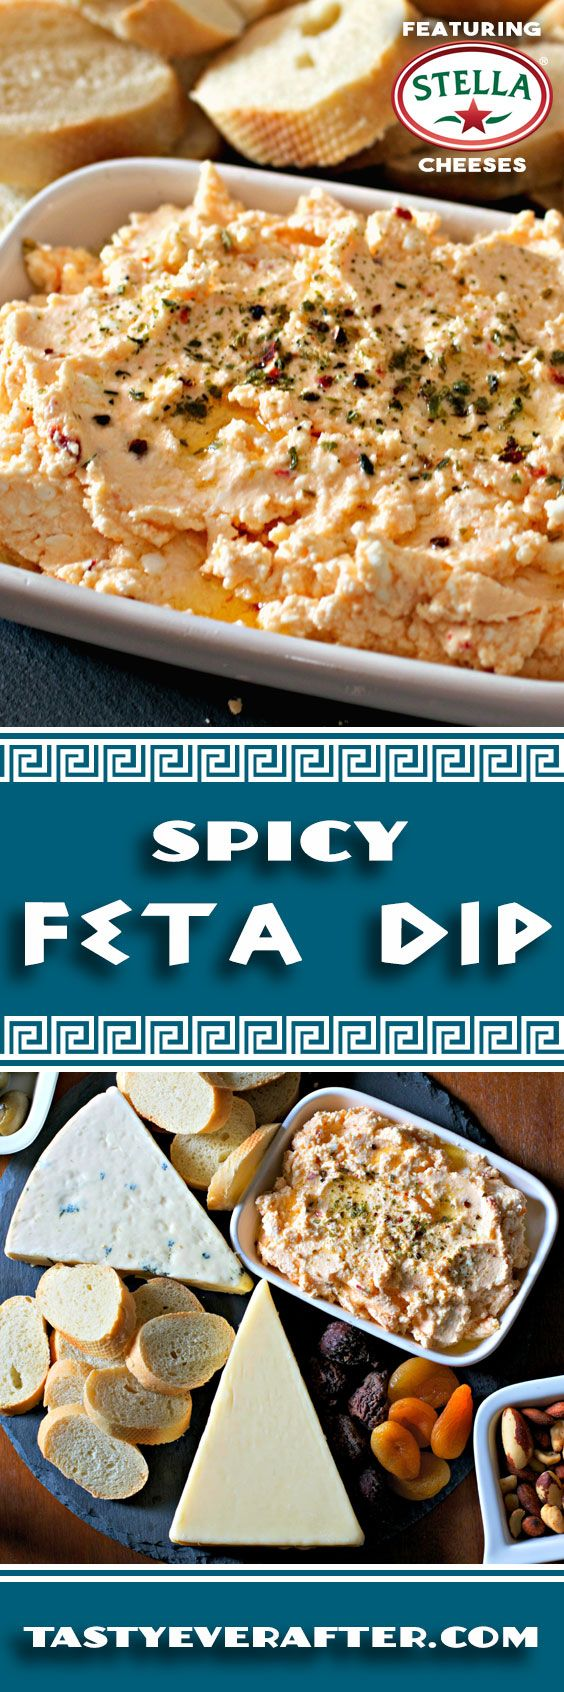 greek spicy feta dip recipe cheese galore rezept spreads dips pesto pinterest. Black Bedroom Furniture Sets. Home Design Ideas